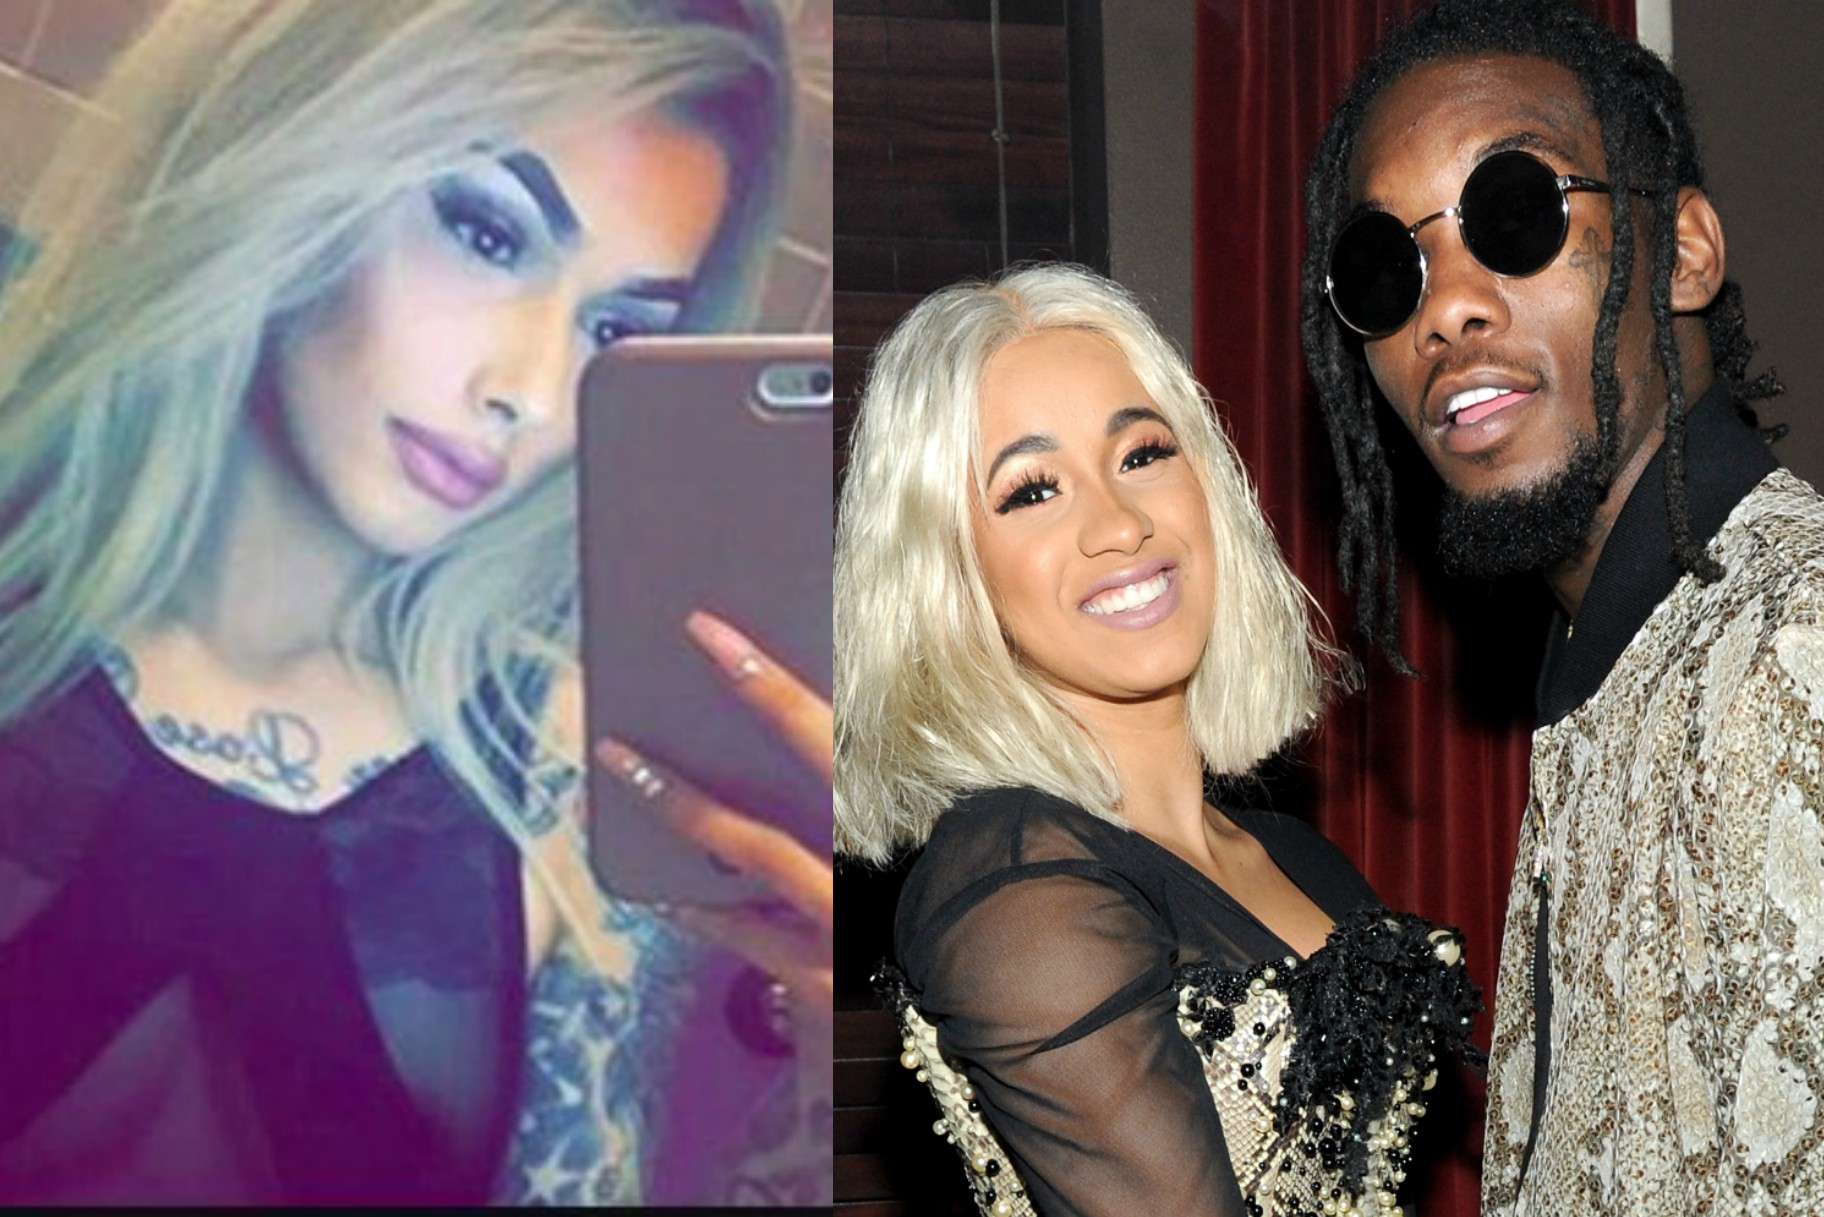 Cardi B S Fiancé Offset Loses 150k Chain After The Met Gala: Woman Claims Cardi B's Fiancé Offset Got Her Pregnant